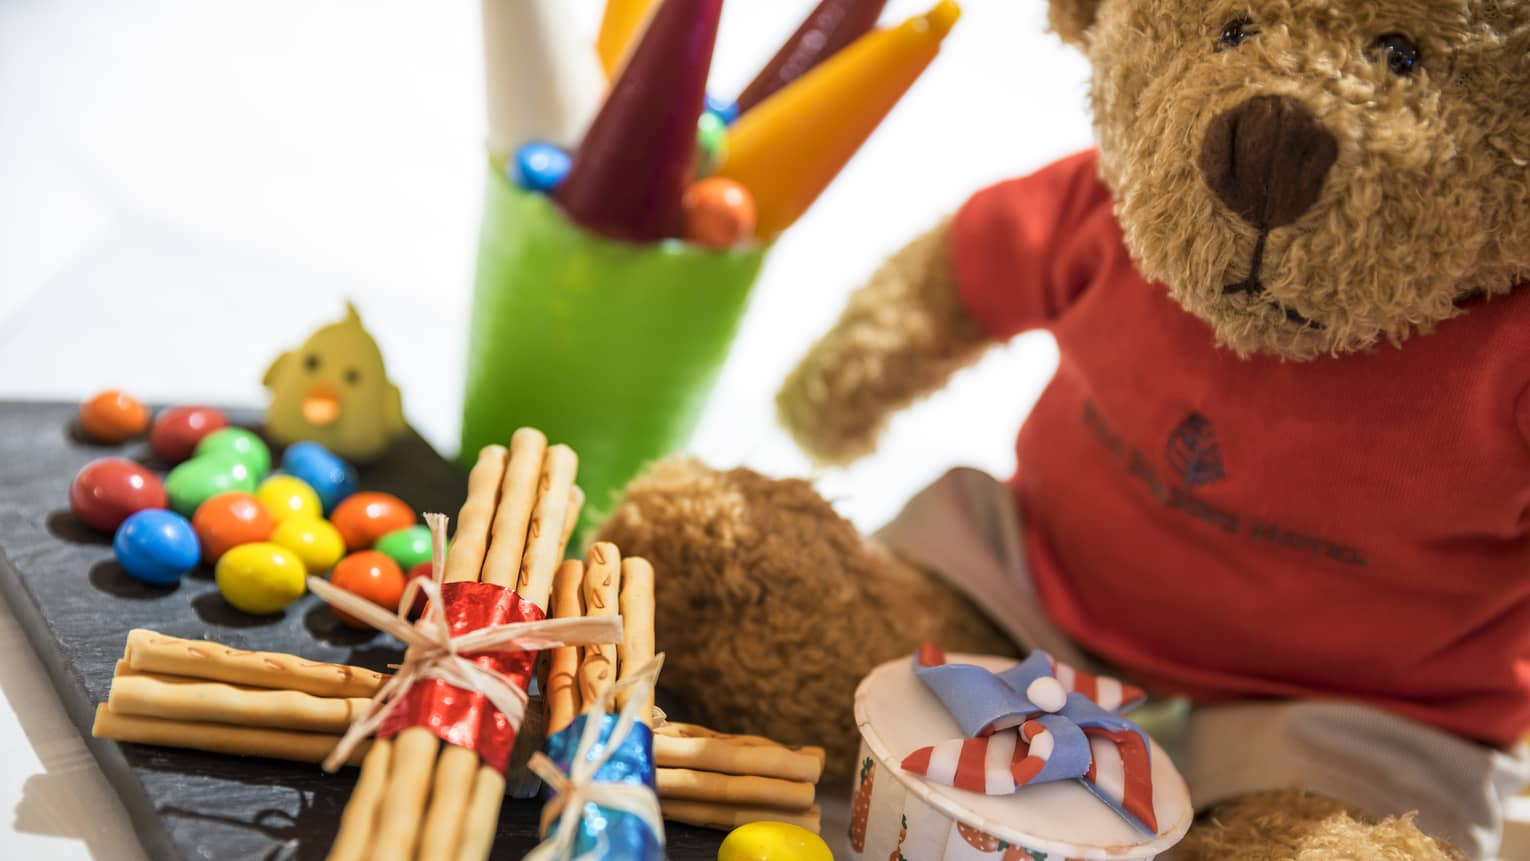 Children's gift package with teddy bear, candy and snacks